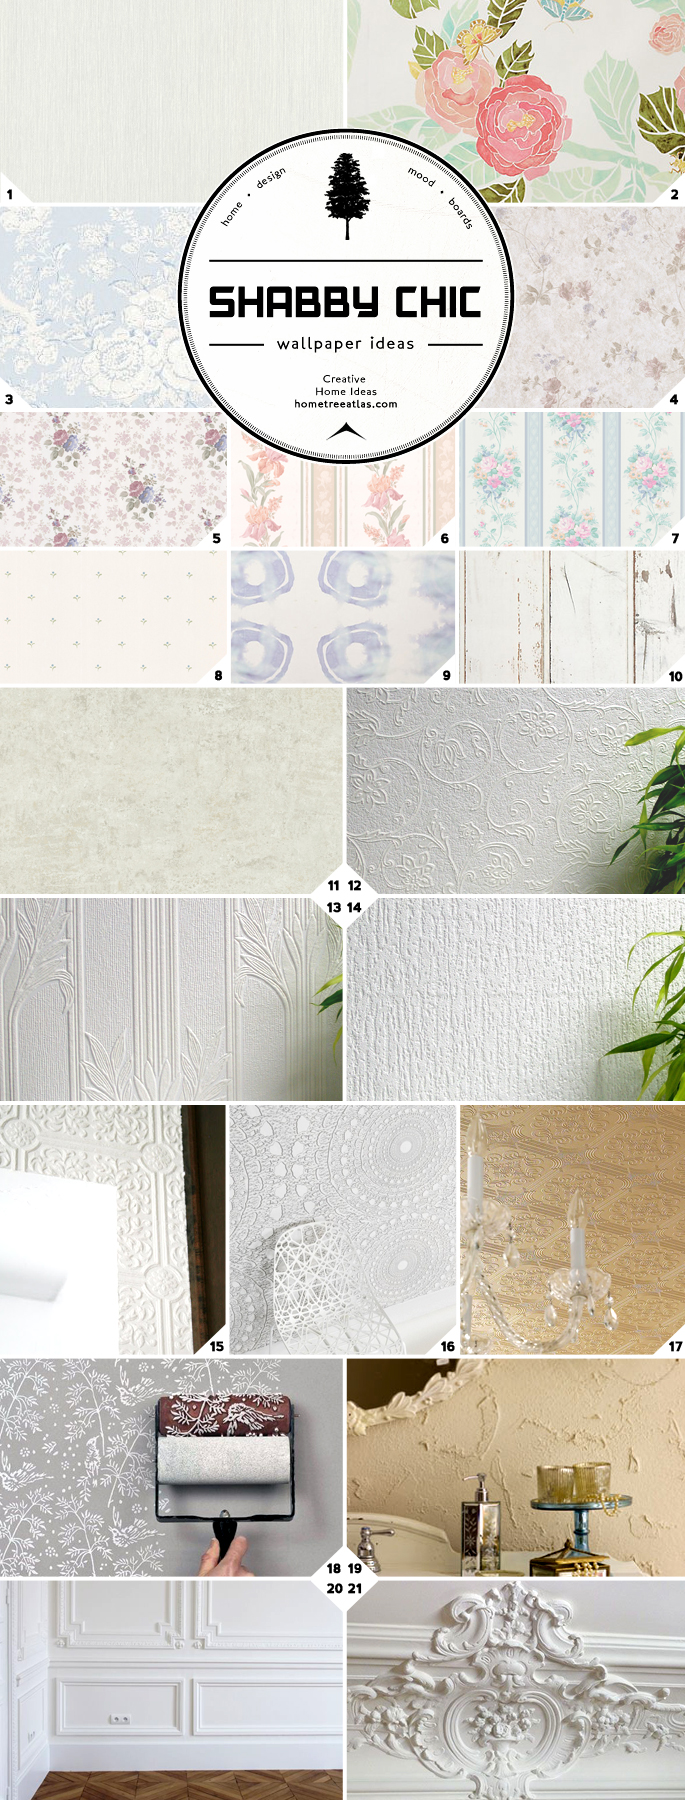 Shabby Chic Wallpaper Ideas and Designs | Home Tree Atlas